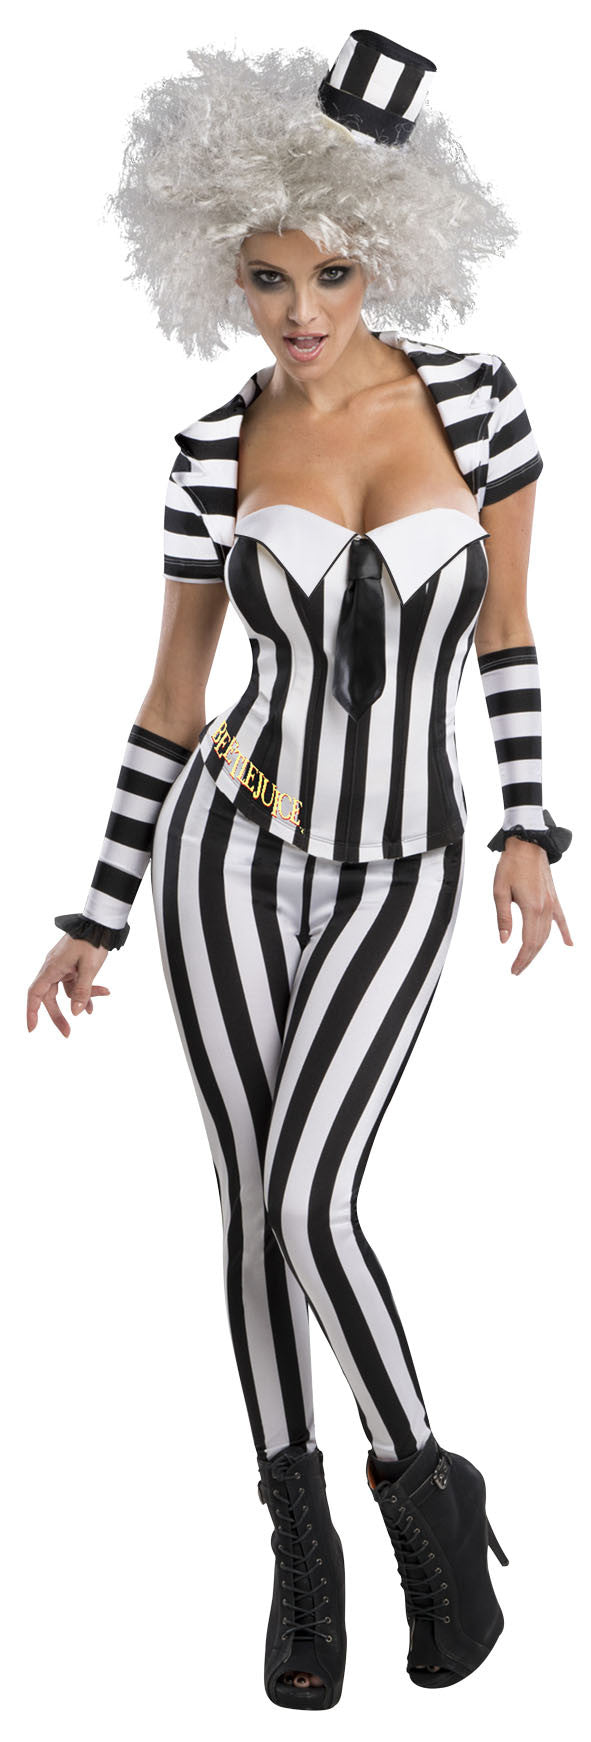 BEETLEJUICE SECRET WISHES BLK/WHT CORSET - SIZE XS